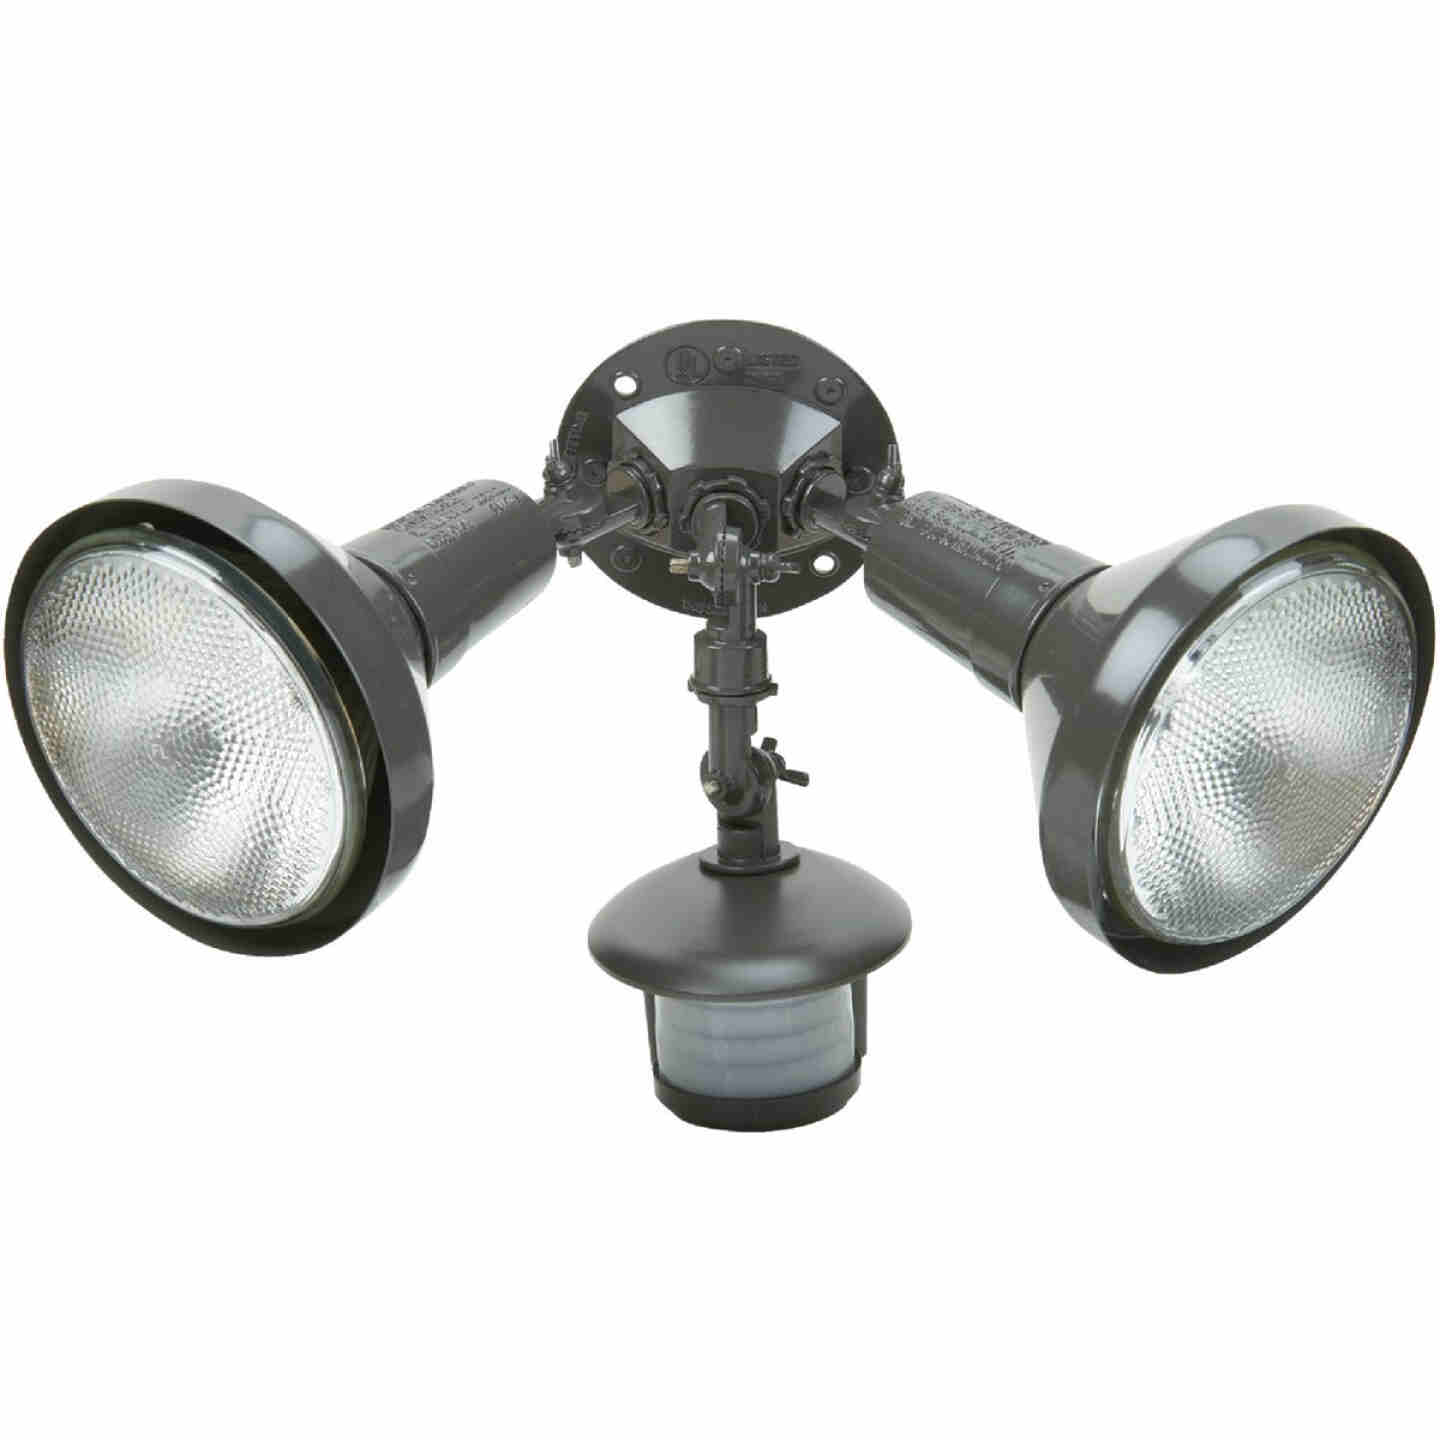 Bronze Motion Sensing Dusk To Dawn Incandescent Floodlight Fixture Image 1